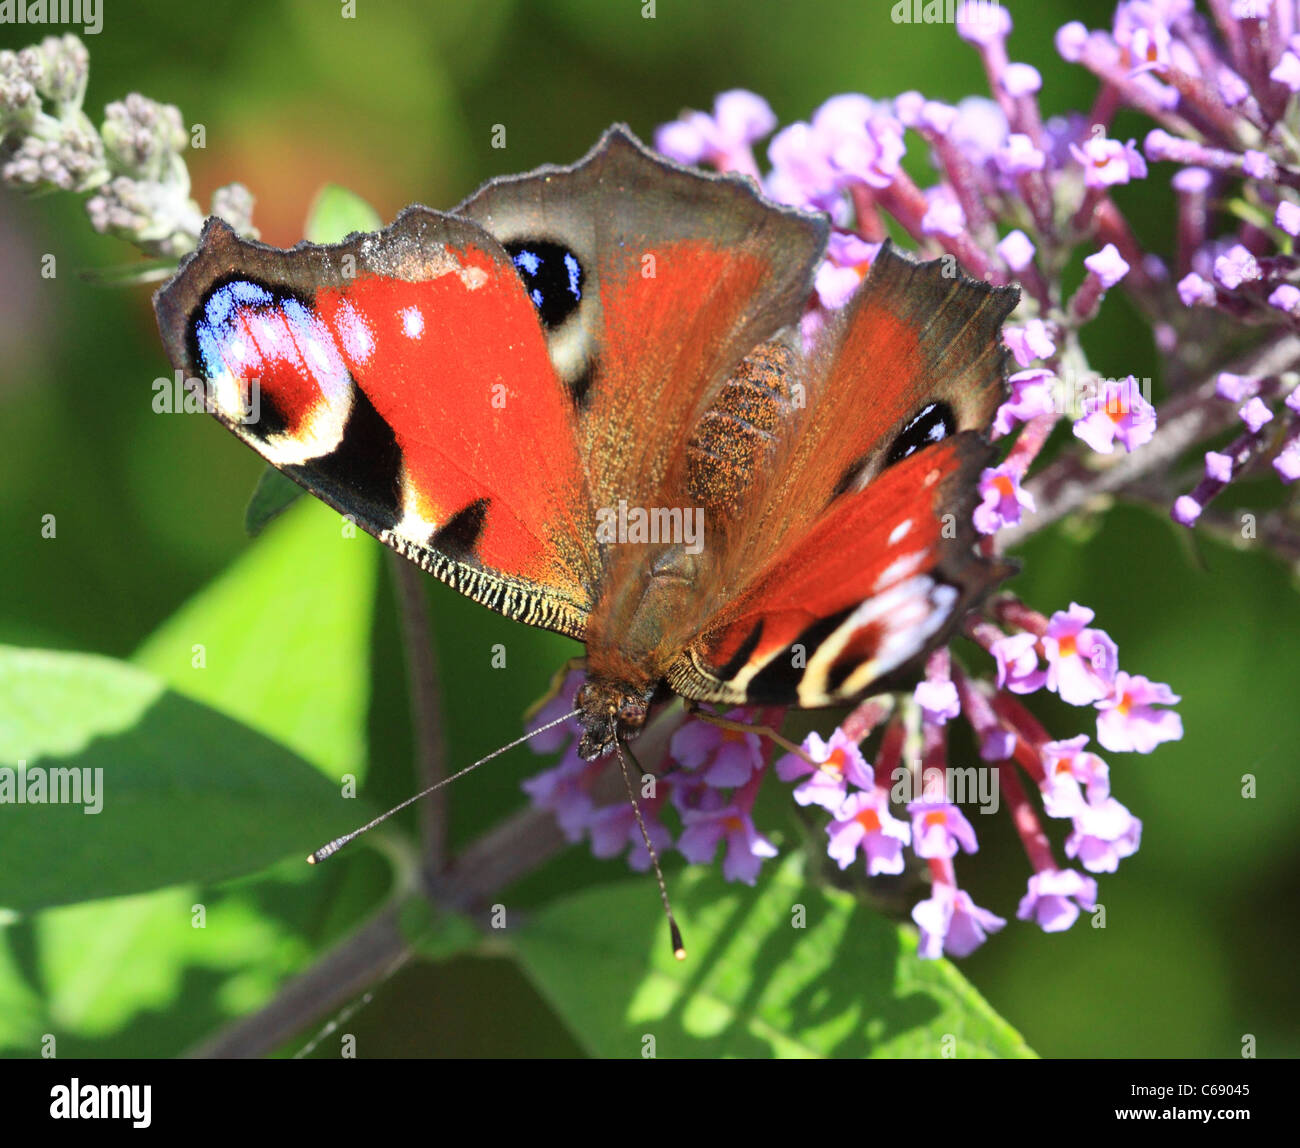 Peacock Butterfly ( Inachis io ) on a Buddleia flower, Worcestershire, England, Europe - Stock Image